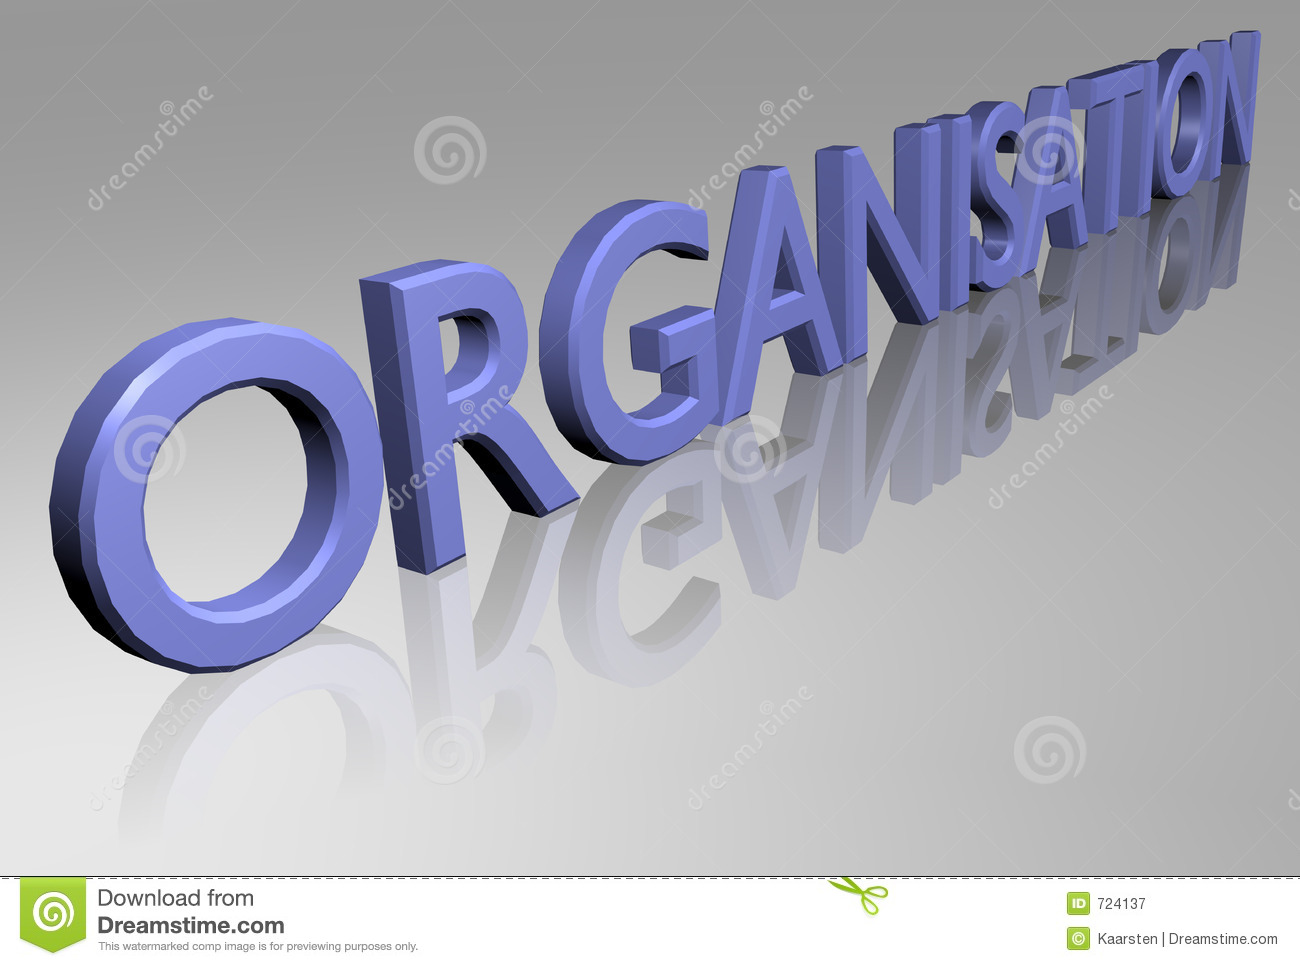 Royalty Free Stock Photography Organisation Image724137